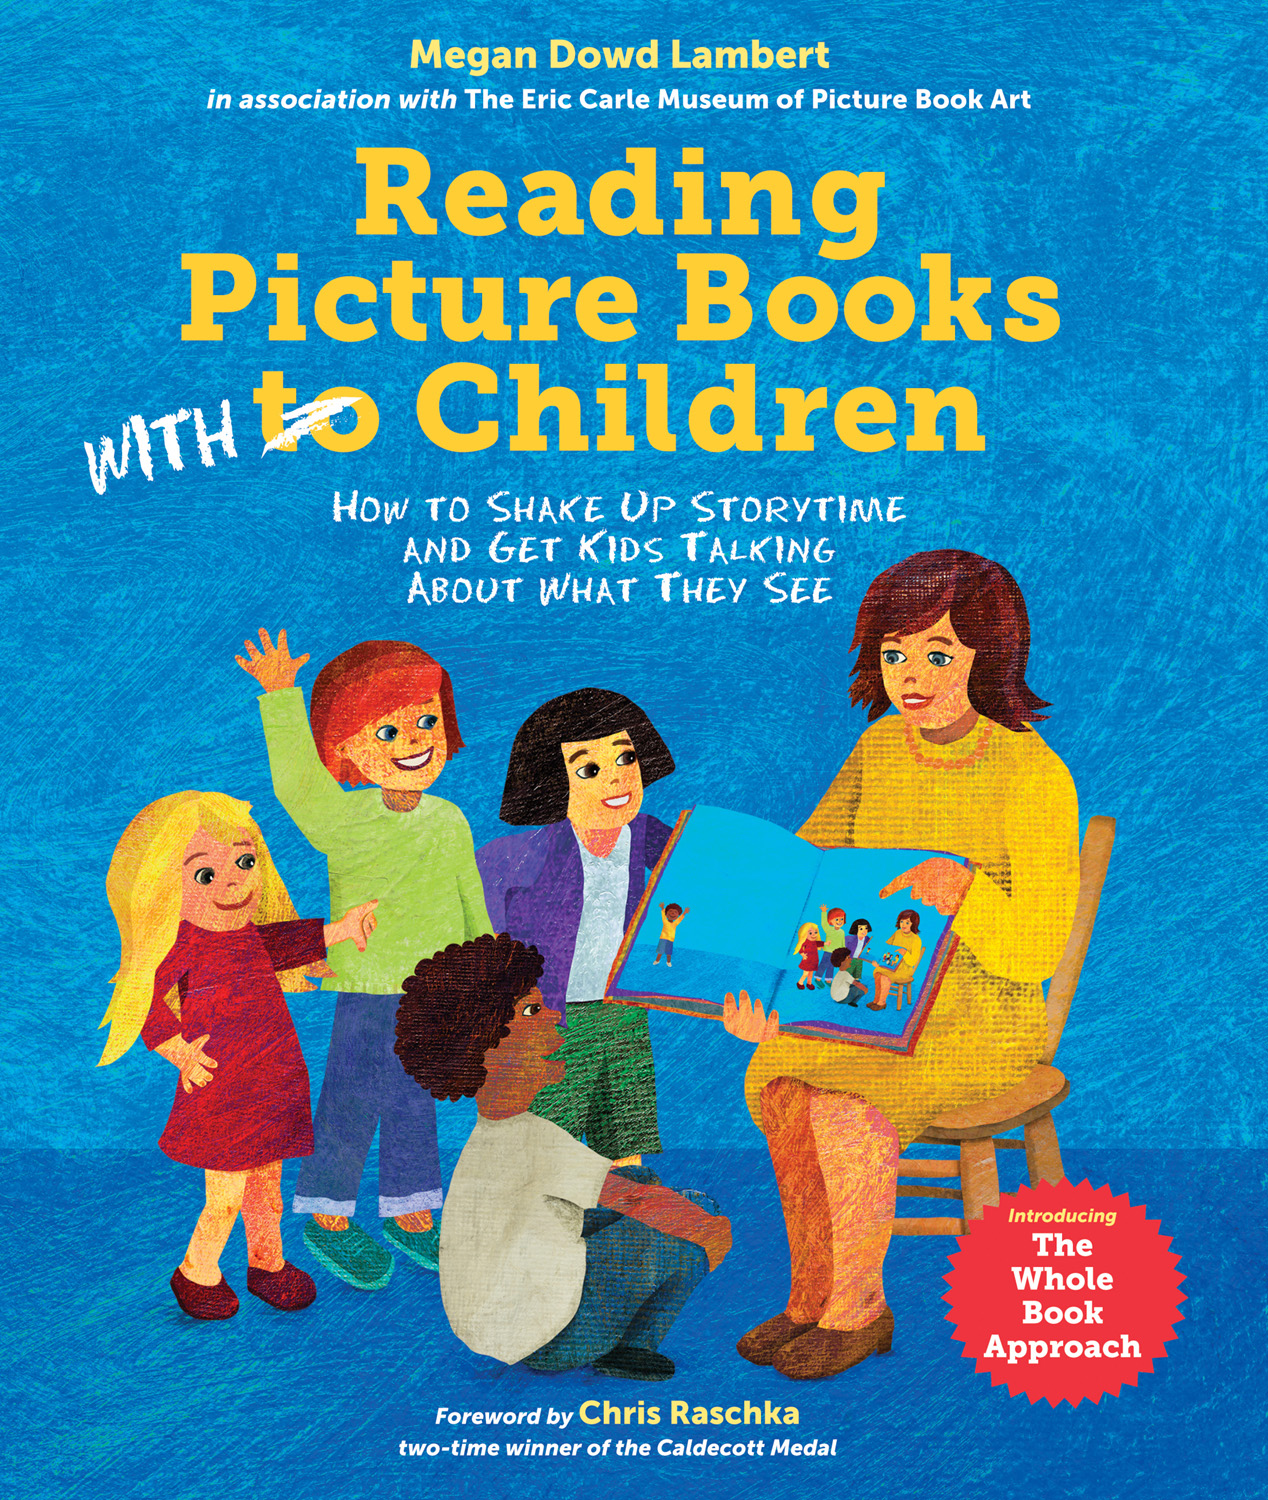 Book Cover For Child : Reading picture books with children megan dowd lambert